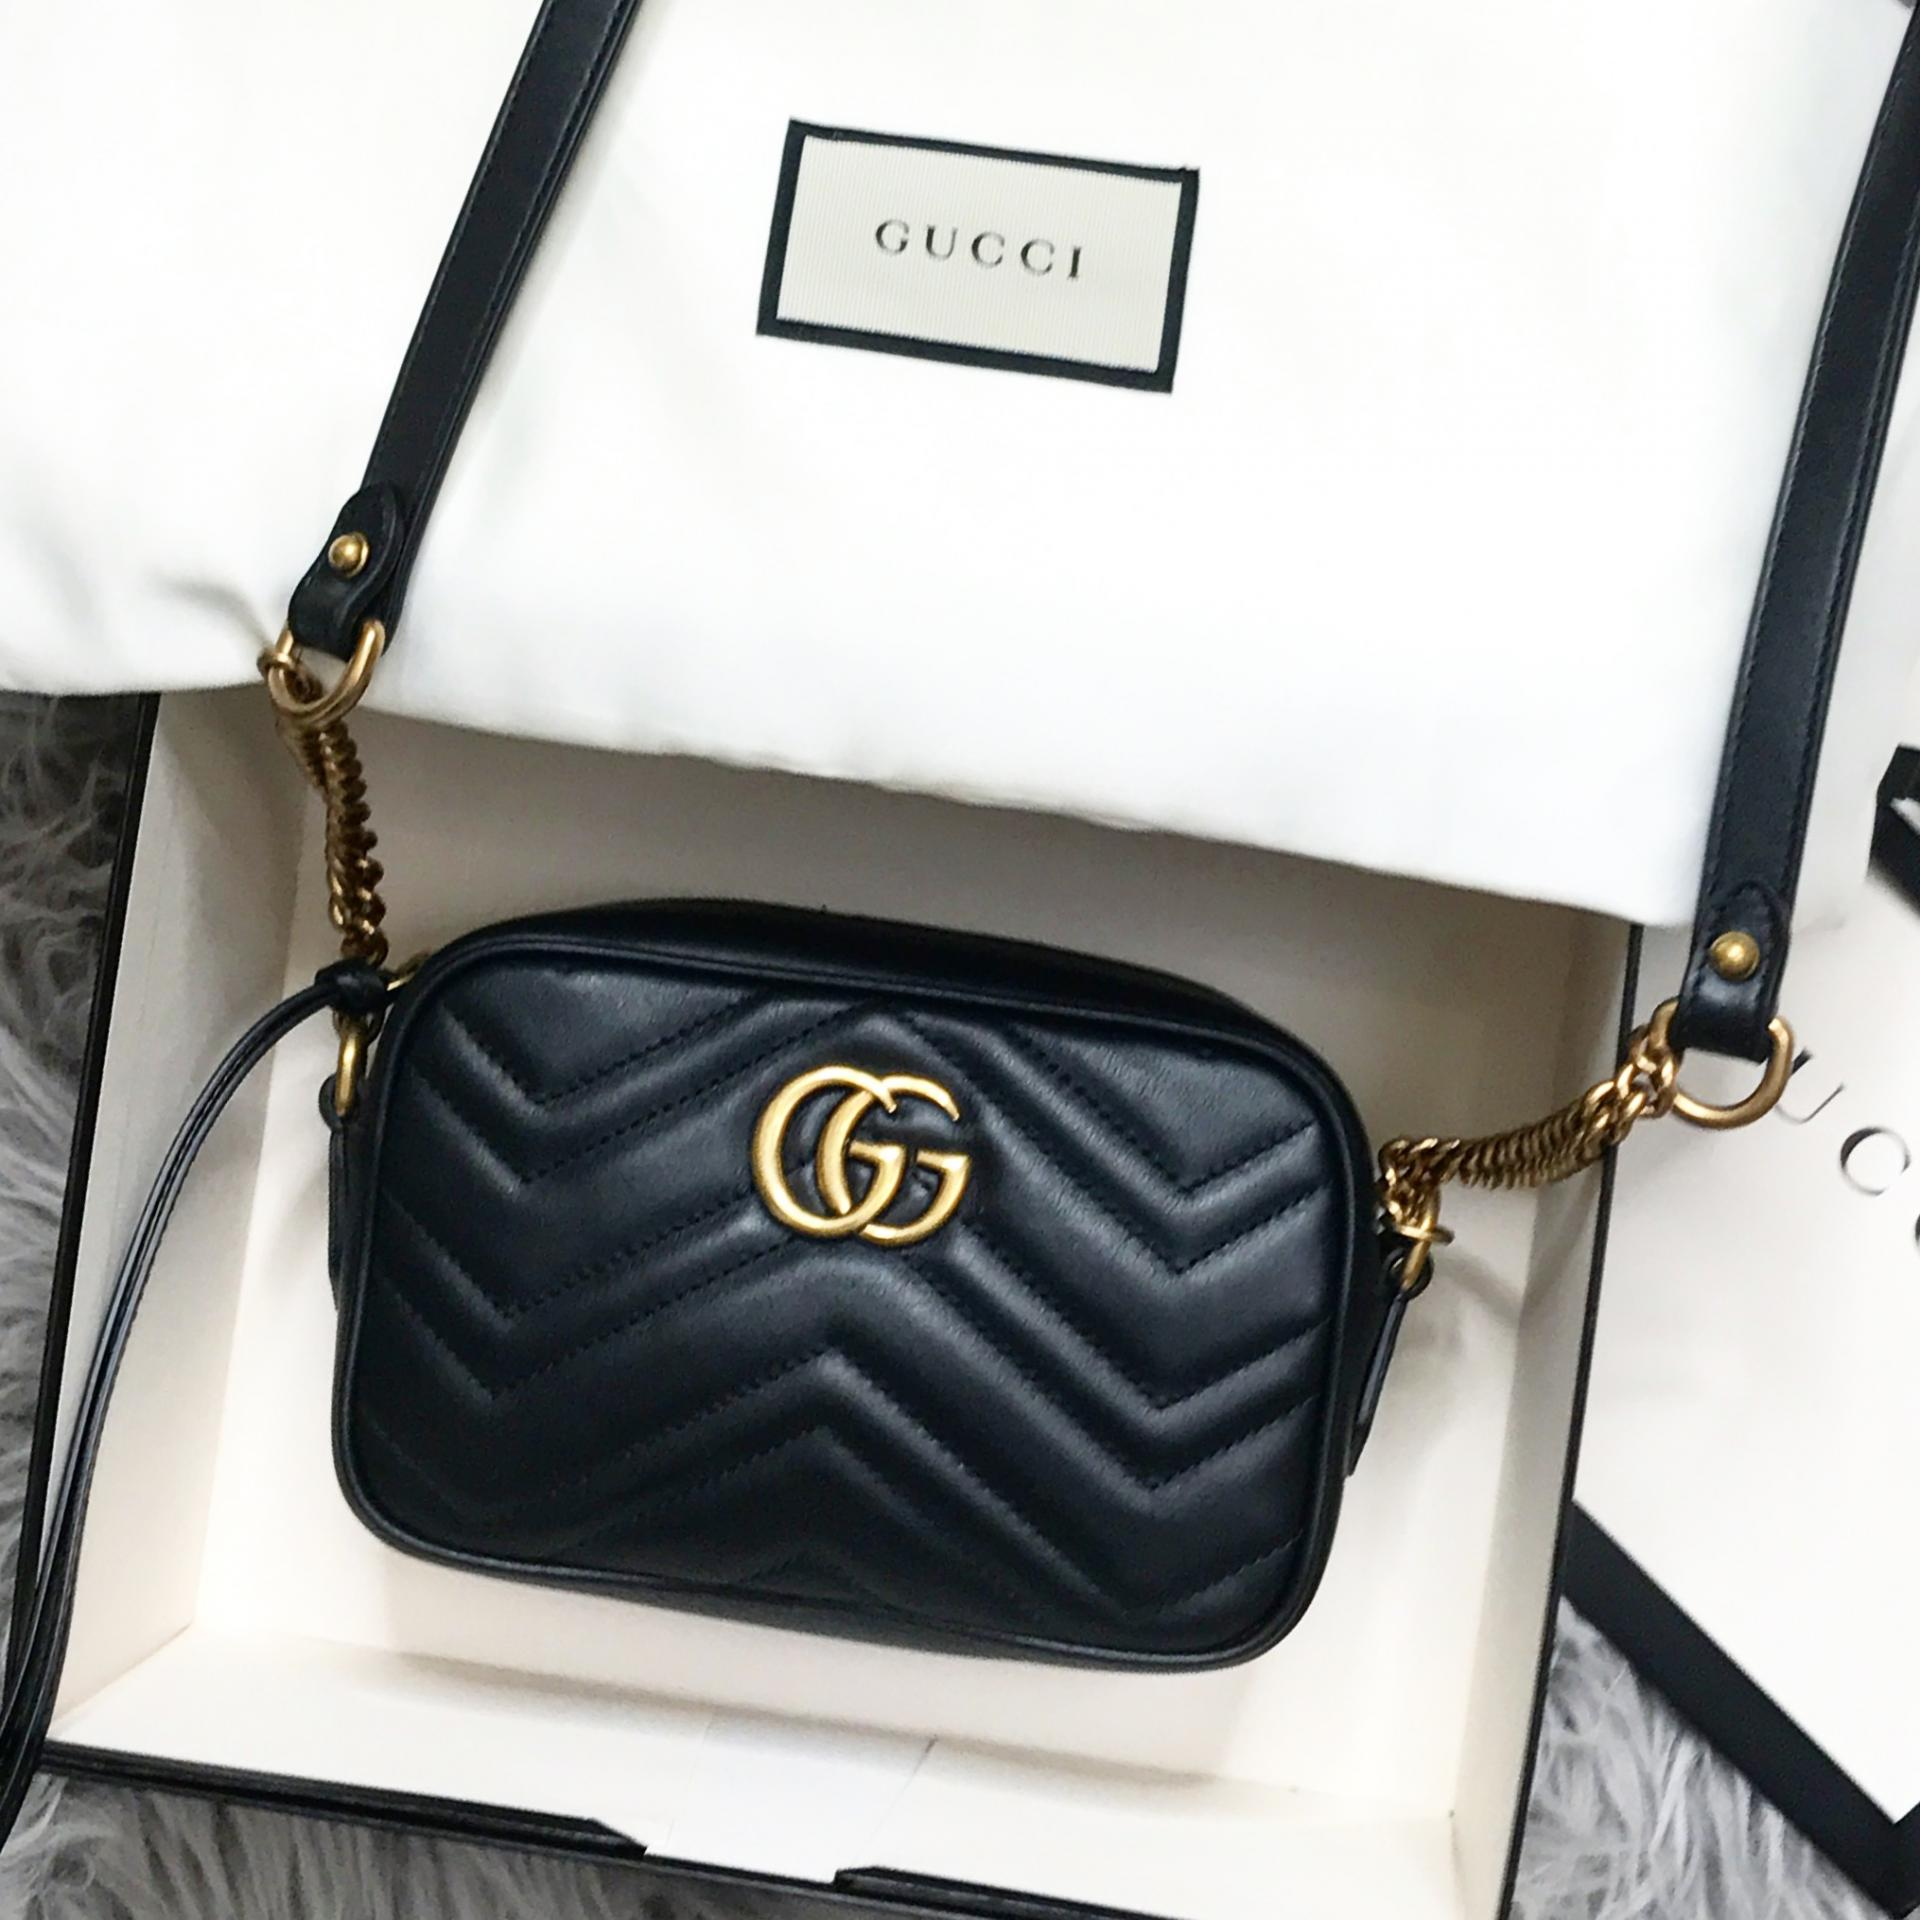 Gucci Marmont Matelass 233 Mini Bag Review I Heart Cosmetics